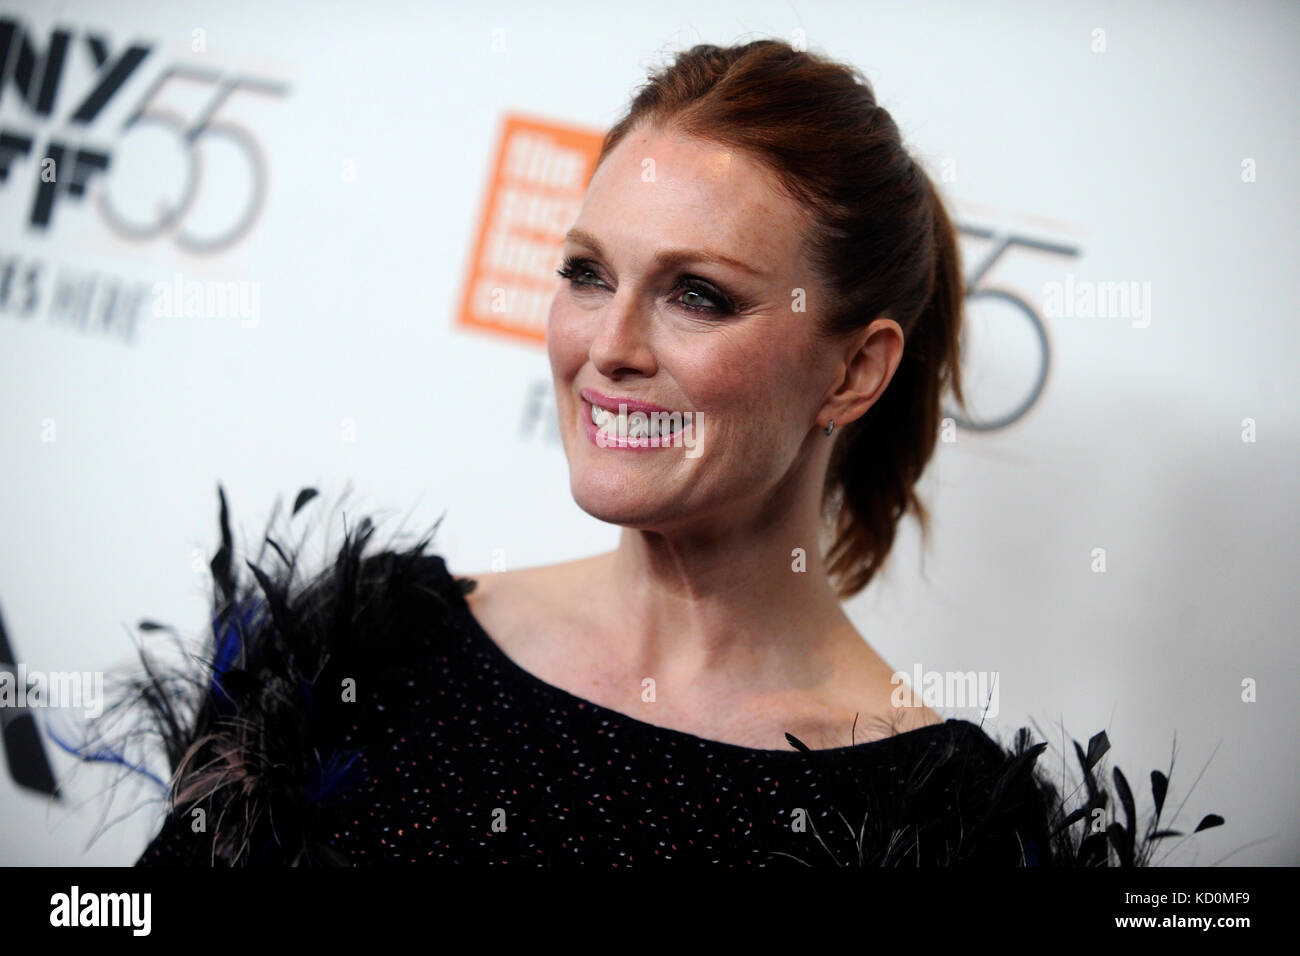 Julianne Moore attends the 'Wonderstruck' premiere during the 55th New York Film Festival at Alice Tully Hall on Stock Photo